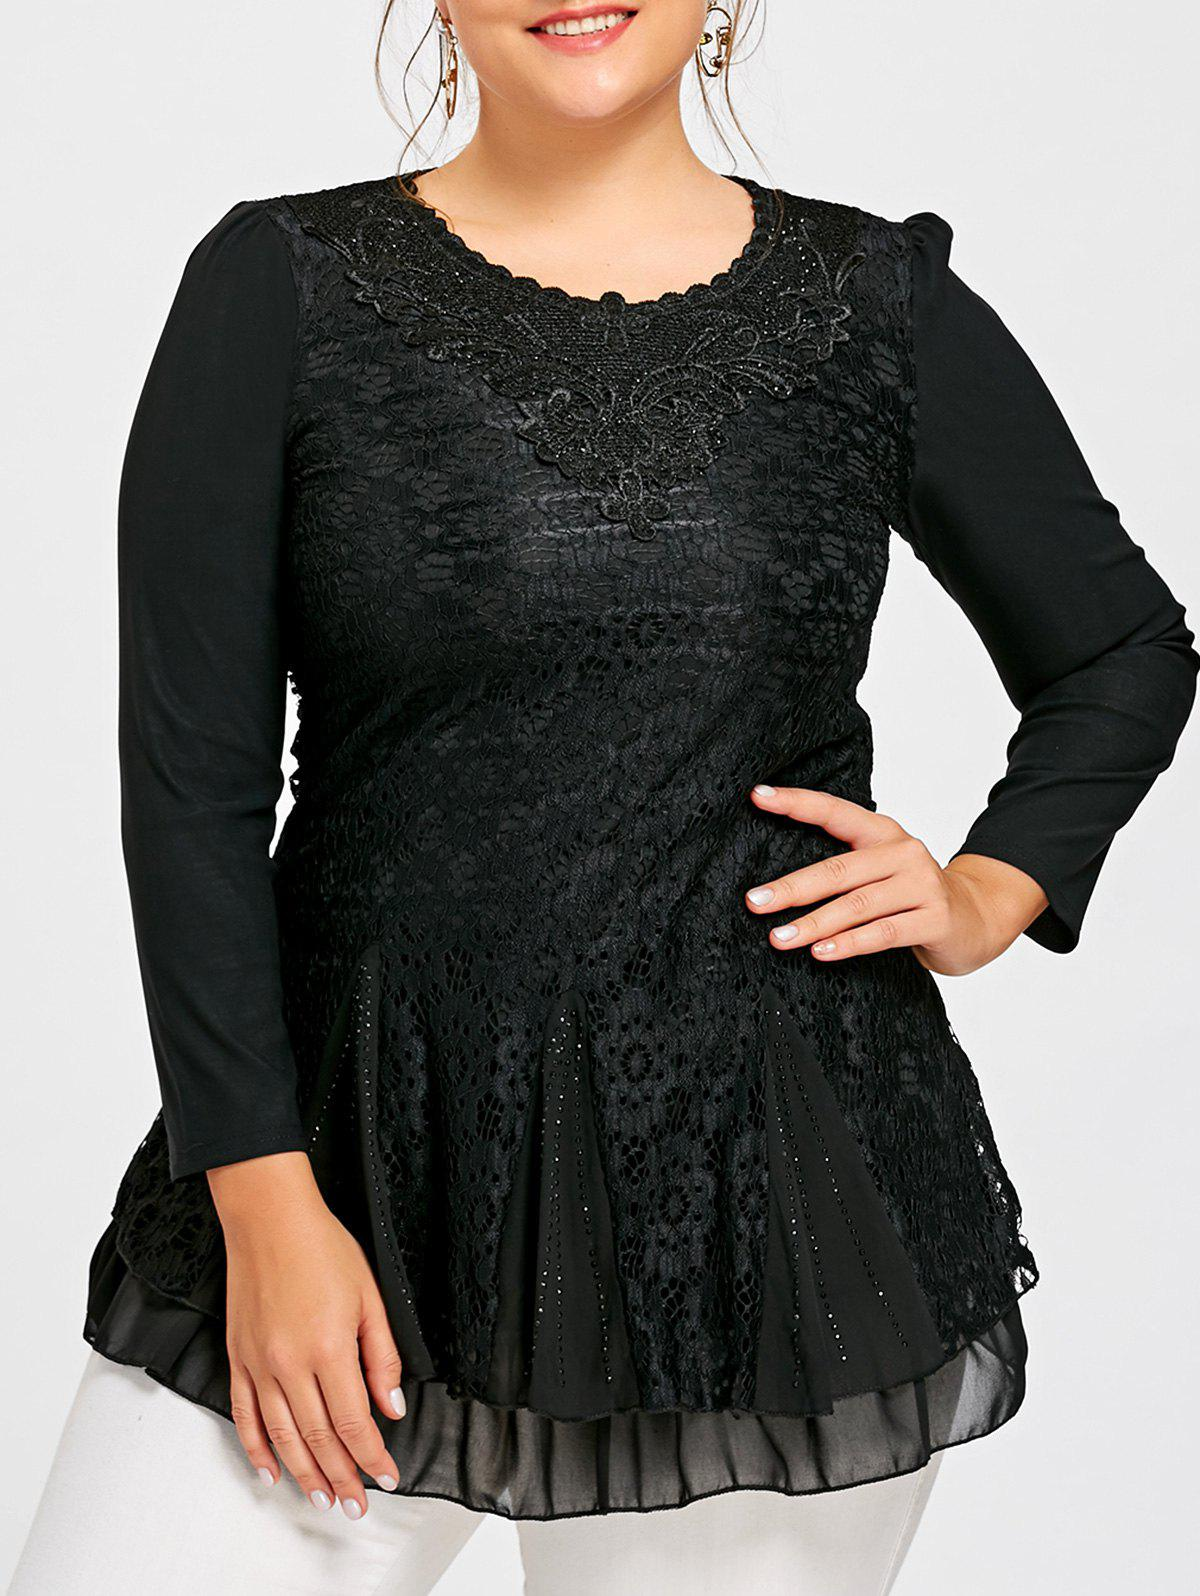 Plus Size Layered Sequined Lace BlouseWOMEN<br><br>Size: 5XL; Color: BLACK; Material: Polyester; Shirt Length: Long; Sleeve Length: Full; Collar: Round Neck; Style: Casual; Season: Fall,Spring; Embellishment: Appliques,Lace,Sequined; Pattern Type: Others; Weight: 0.4100kg; Package Contents: 1 x Blouse;